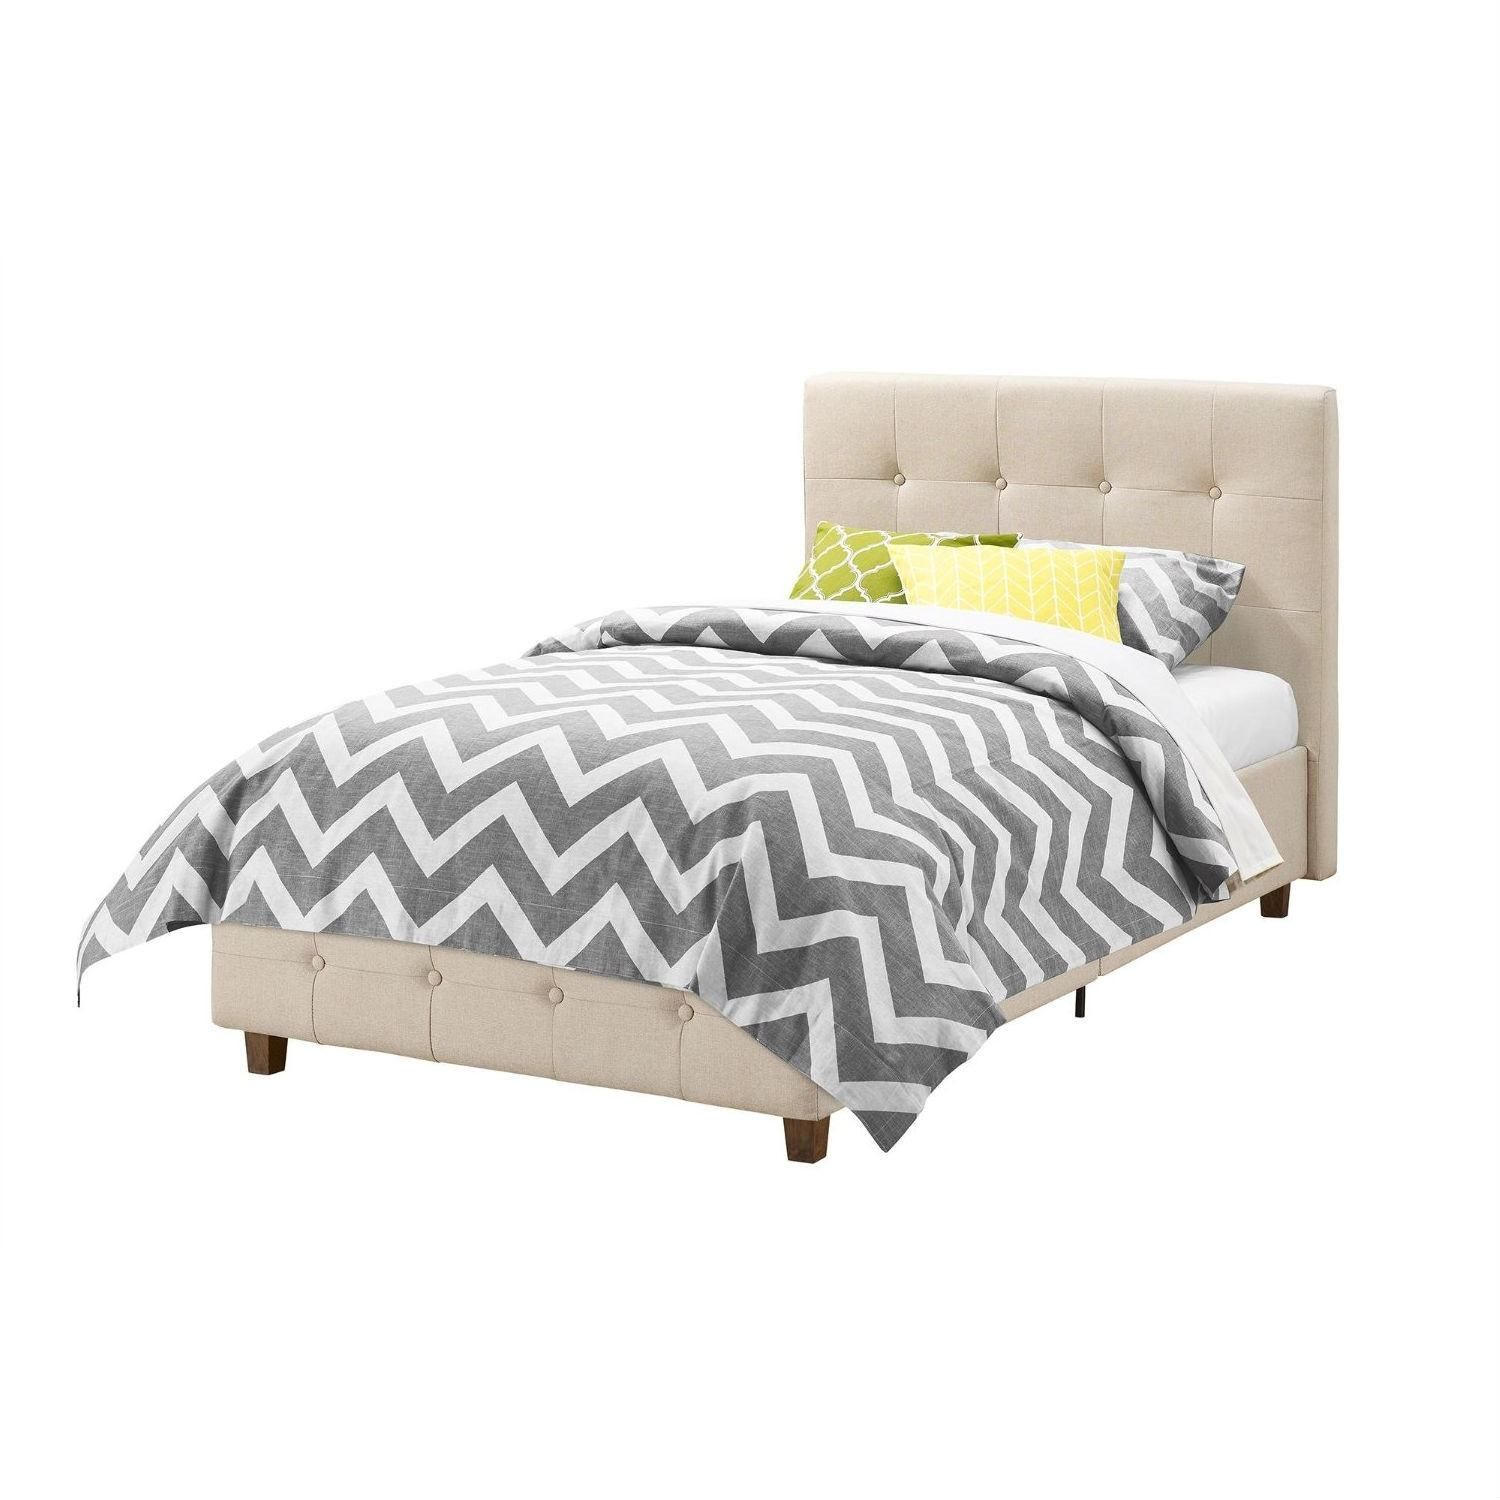 Huntington Beach Upholstered platform bed, Twin size bed